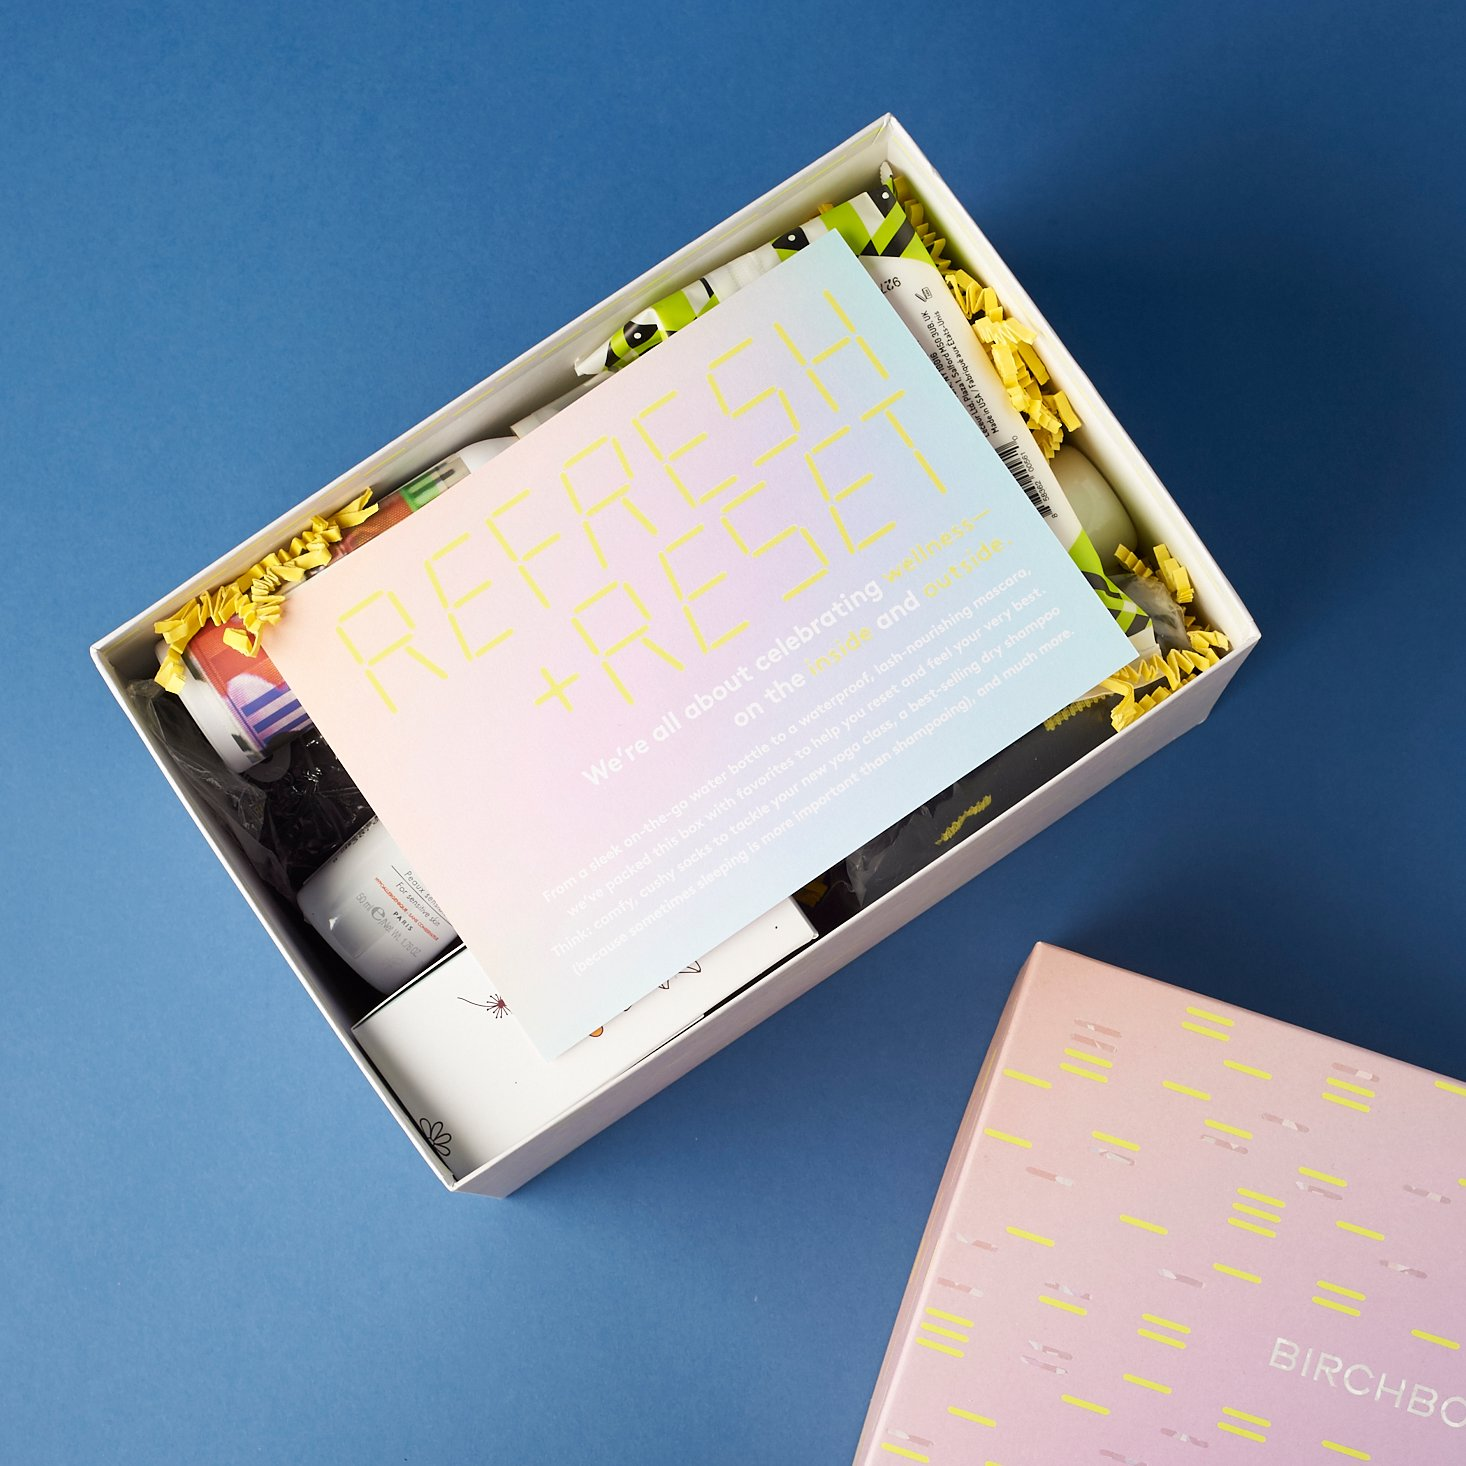 birchbox-limited-edition-refresh-and-reset-box-january-2017-0027